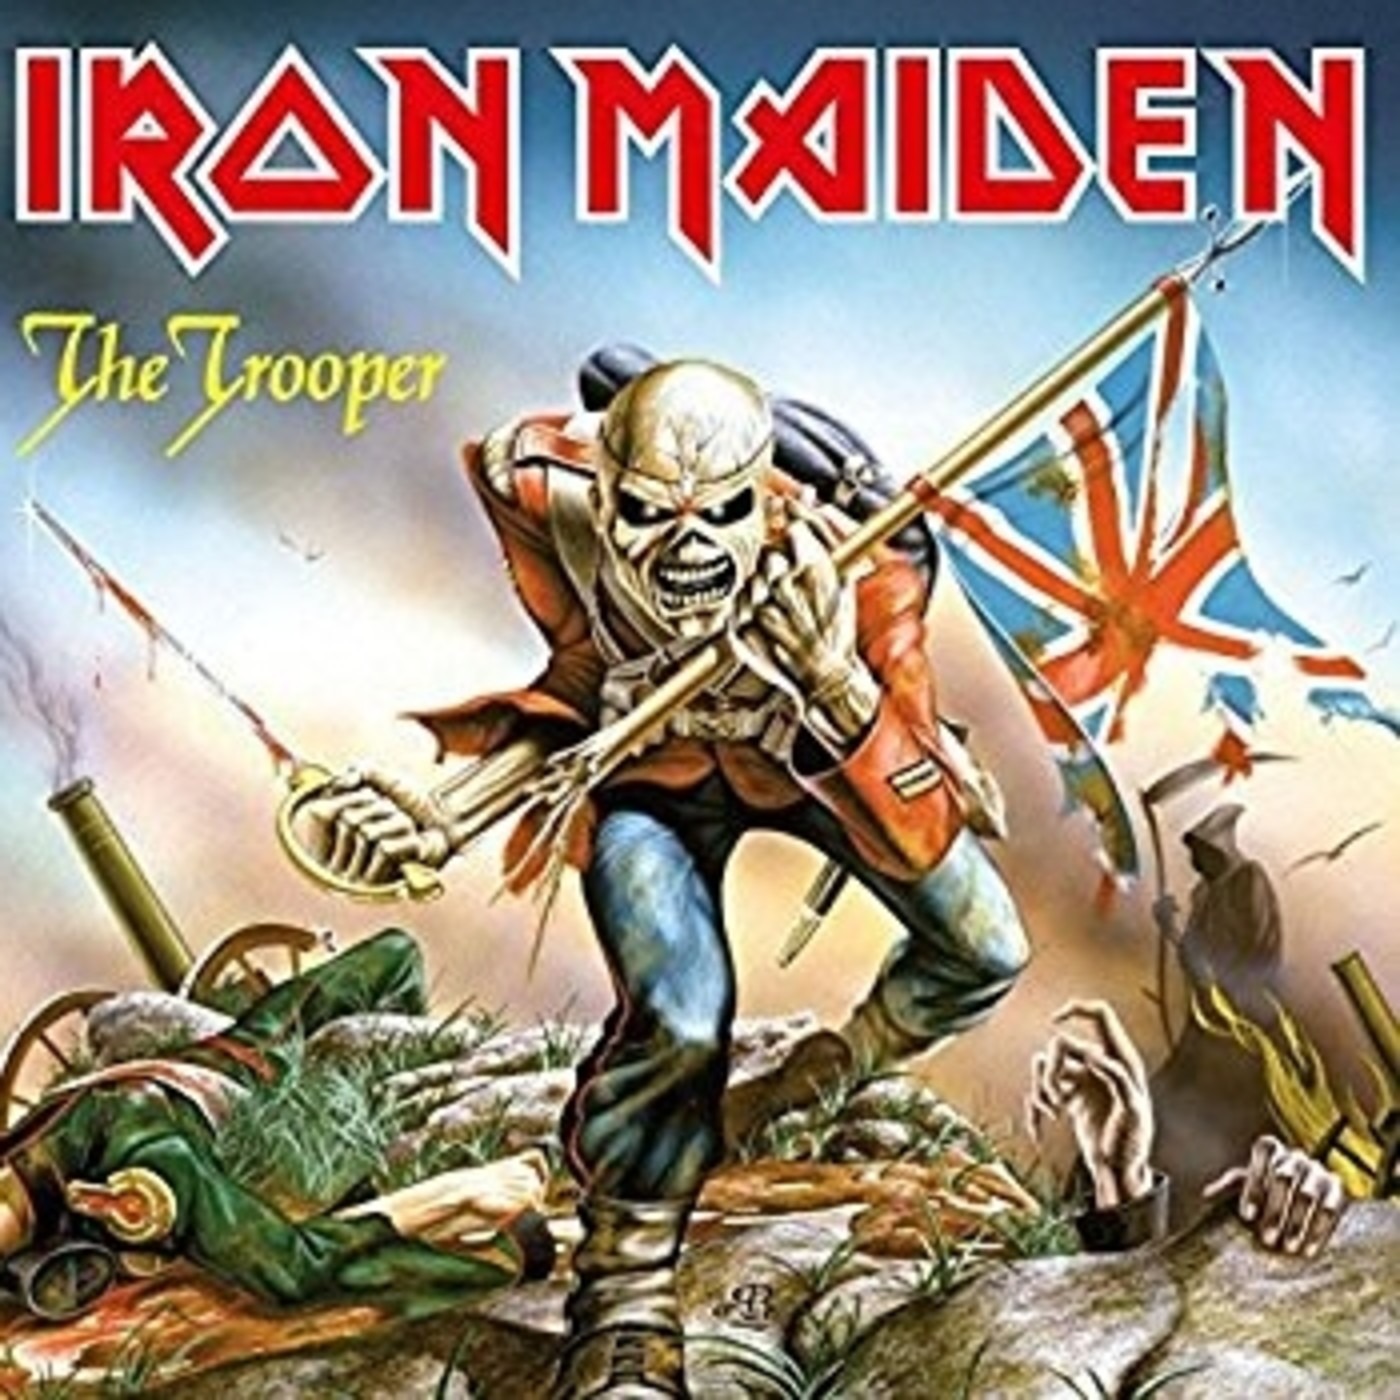 (ltsm): La Tardis Sobre Metropolis 3 x 26: Cronología Iron Maiden 3: Peace of mind / Powerslave /Live After Death